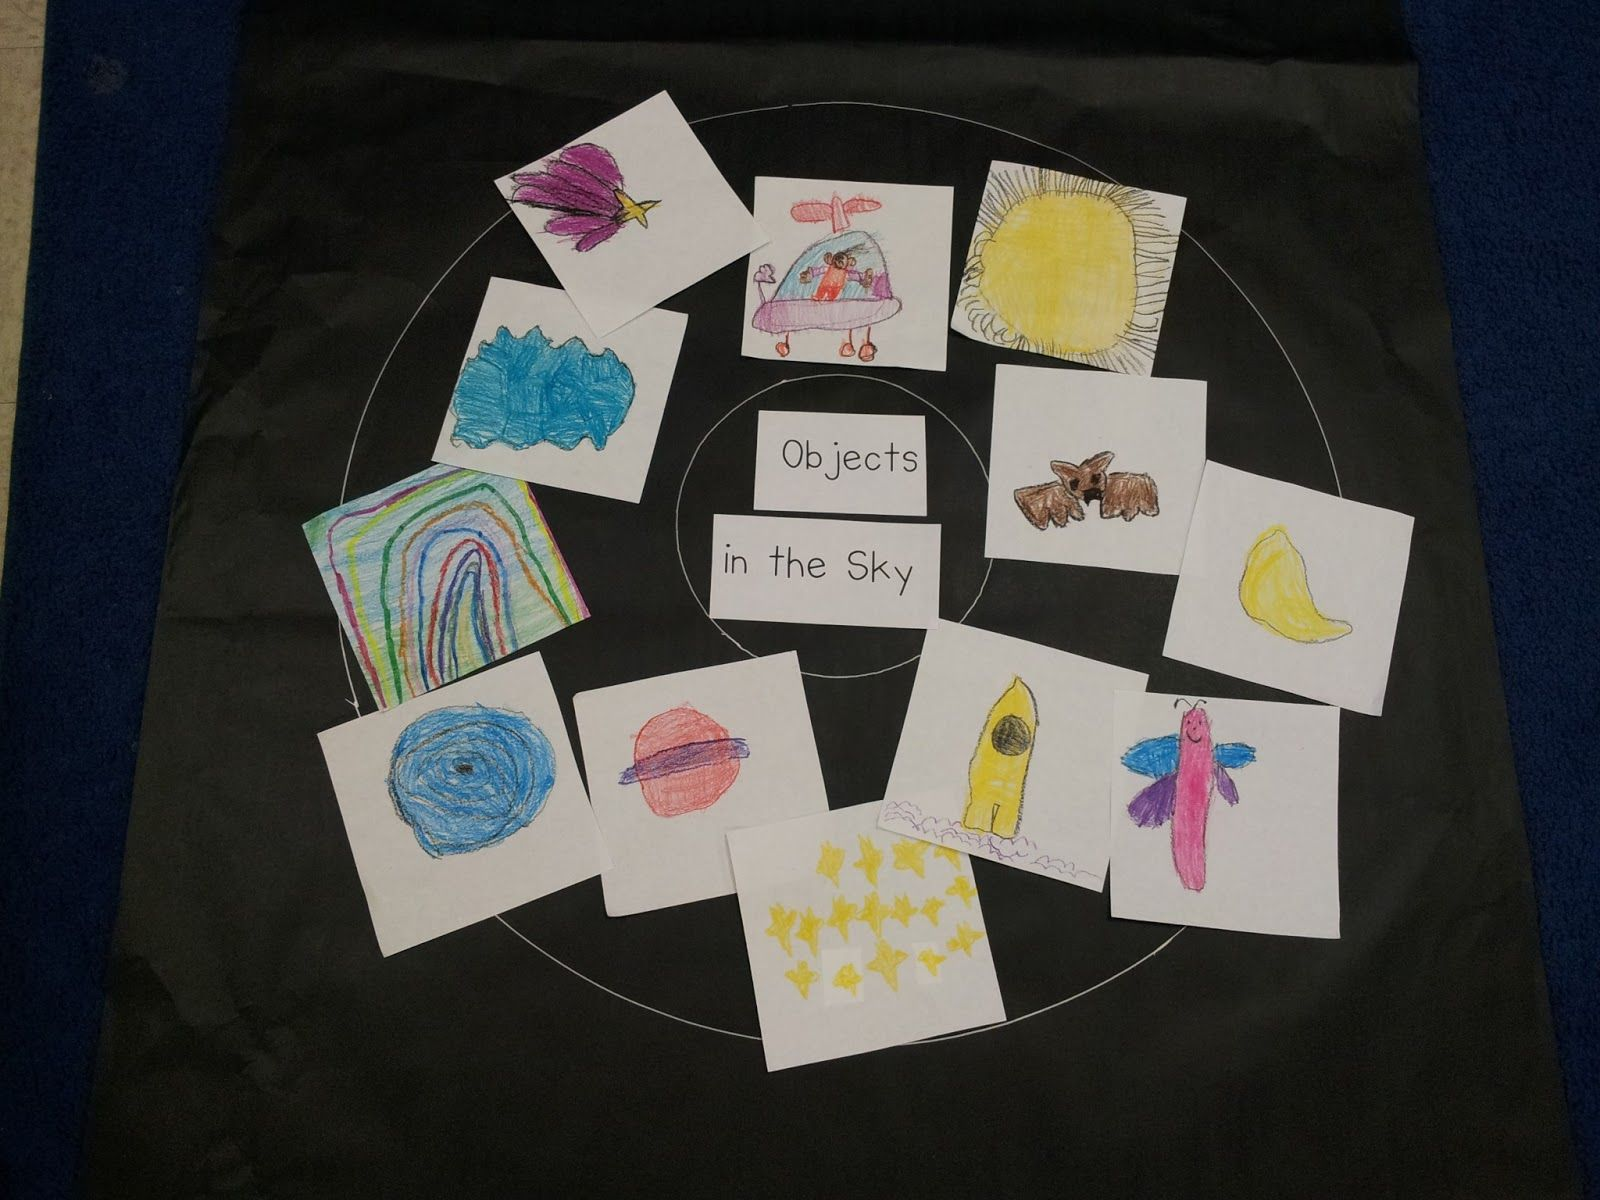 We created a circle map of objects in the sky this picture was we created a circle map of objects in the sky this picture was taken before sciox Gallery